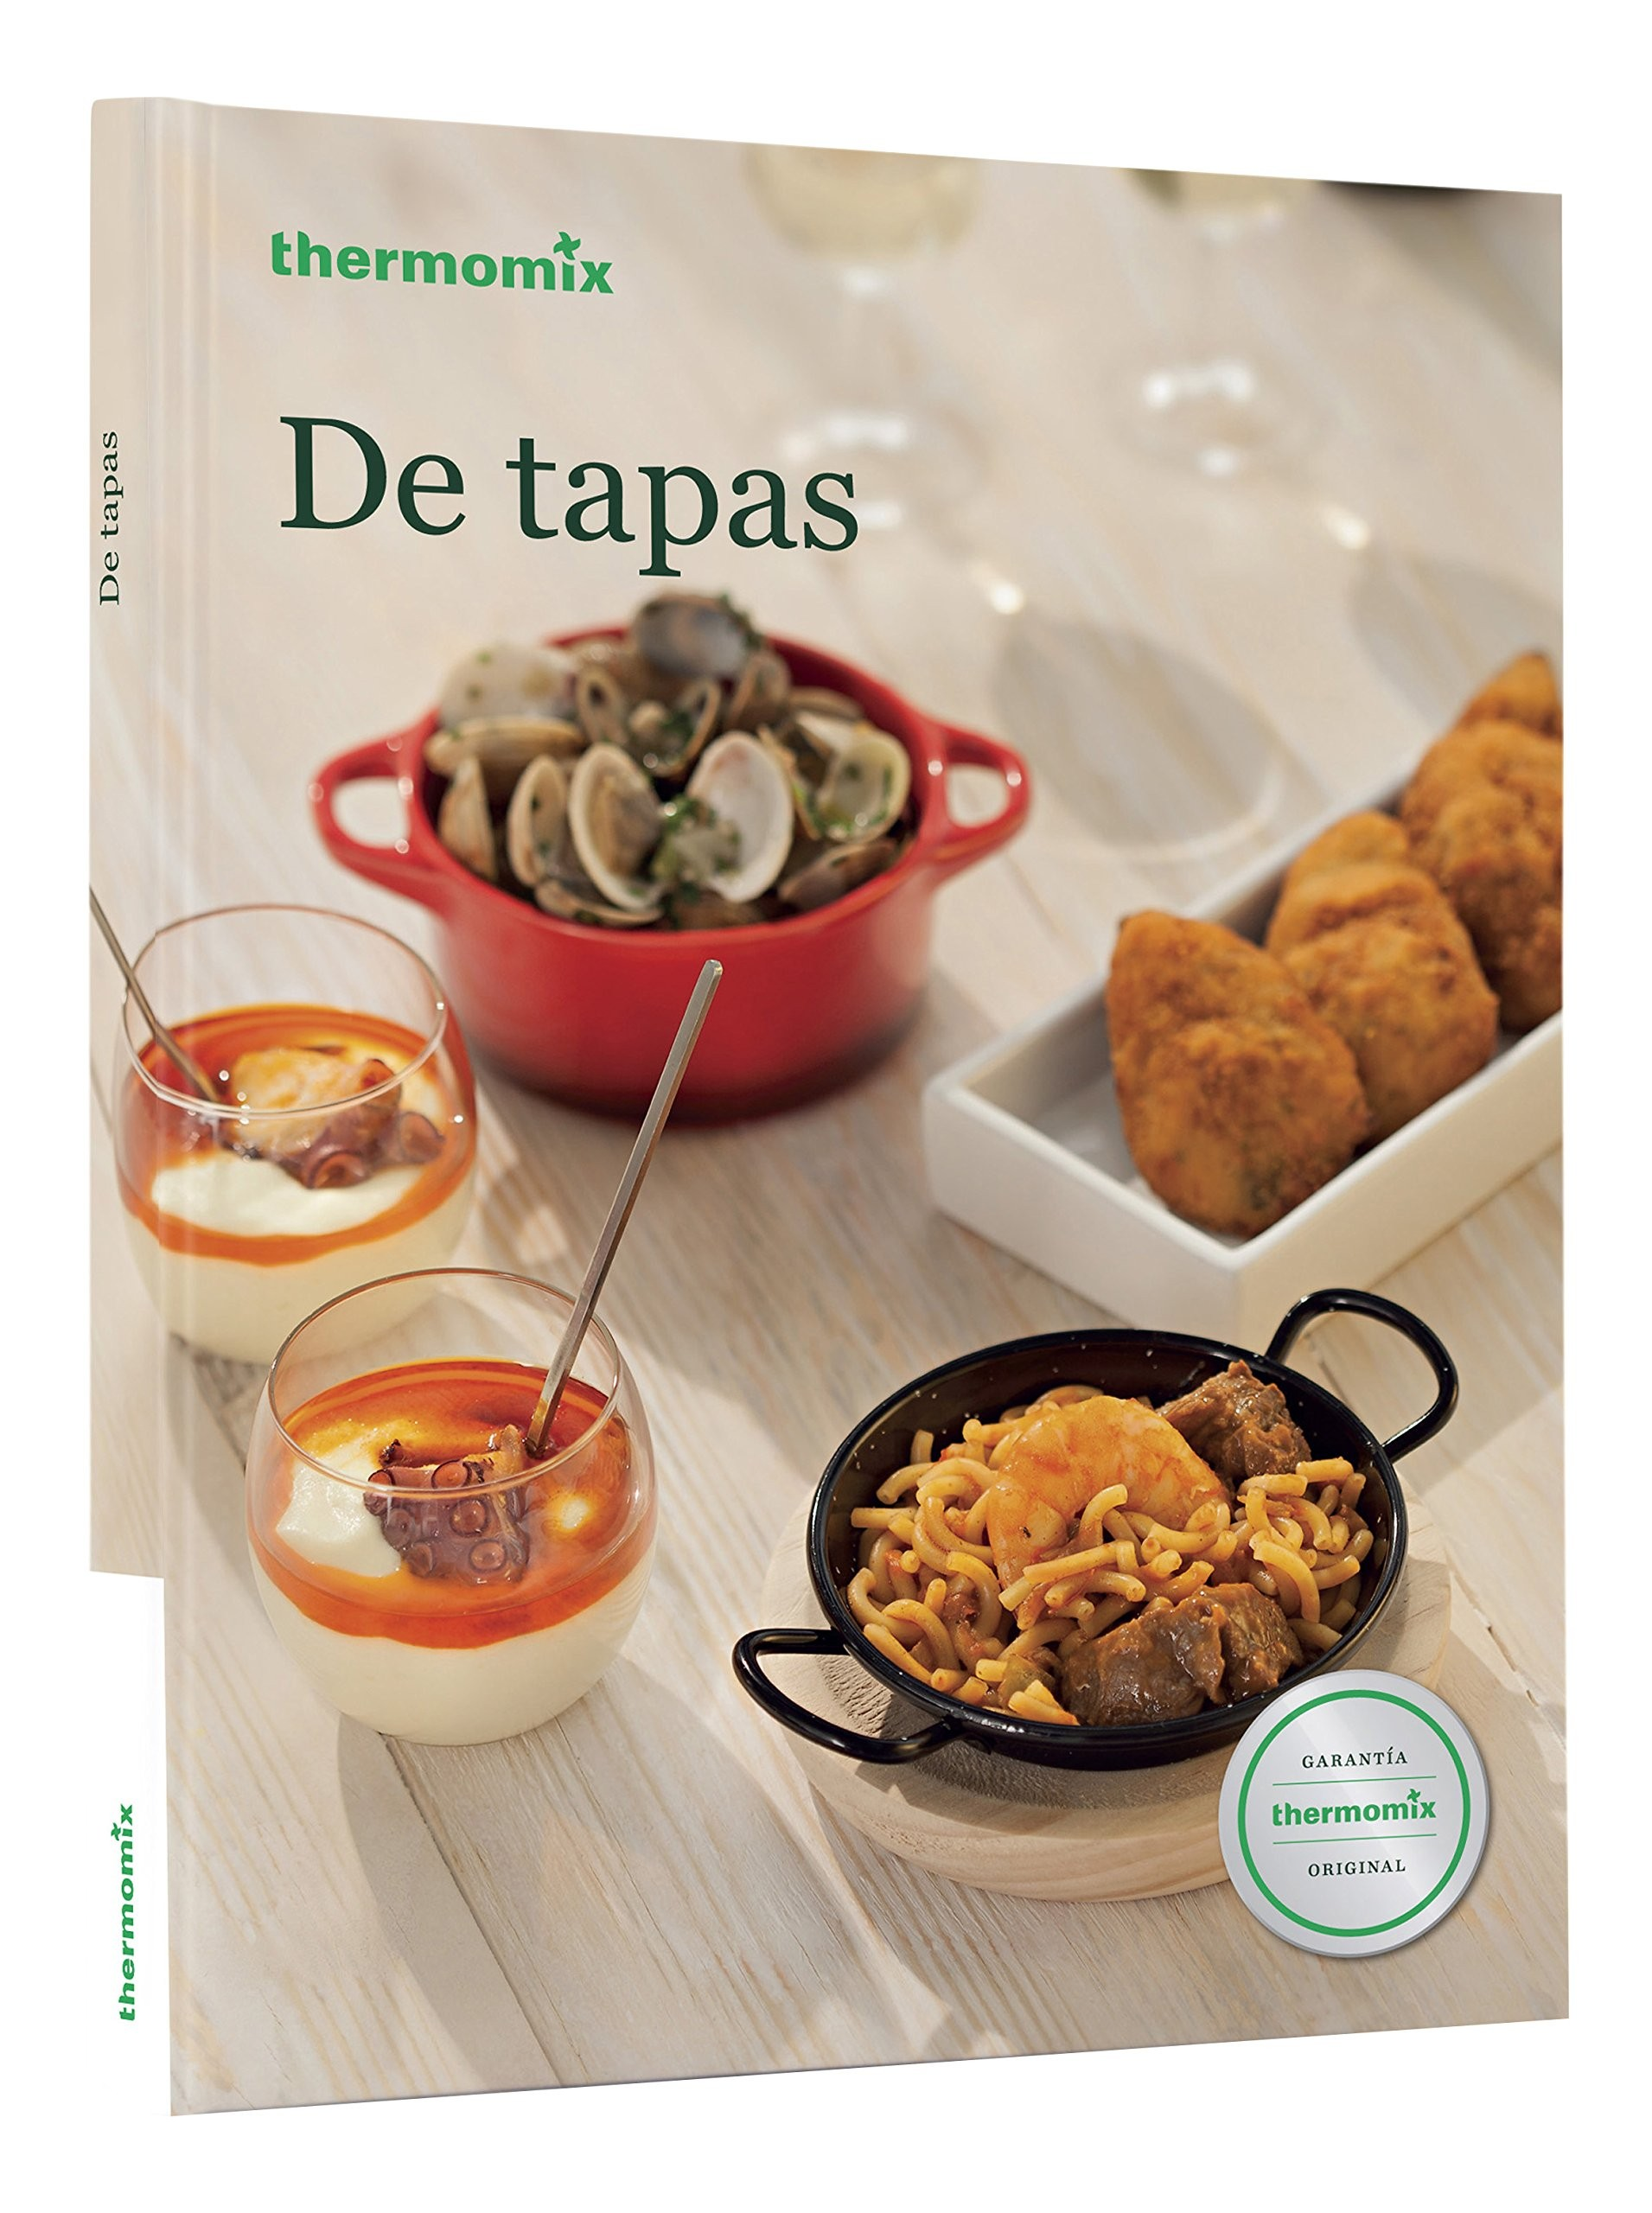 libros thermomix para el verano de tapas fr o y natural. Black Bedroom Furniture Sets. Home Design Ideas